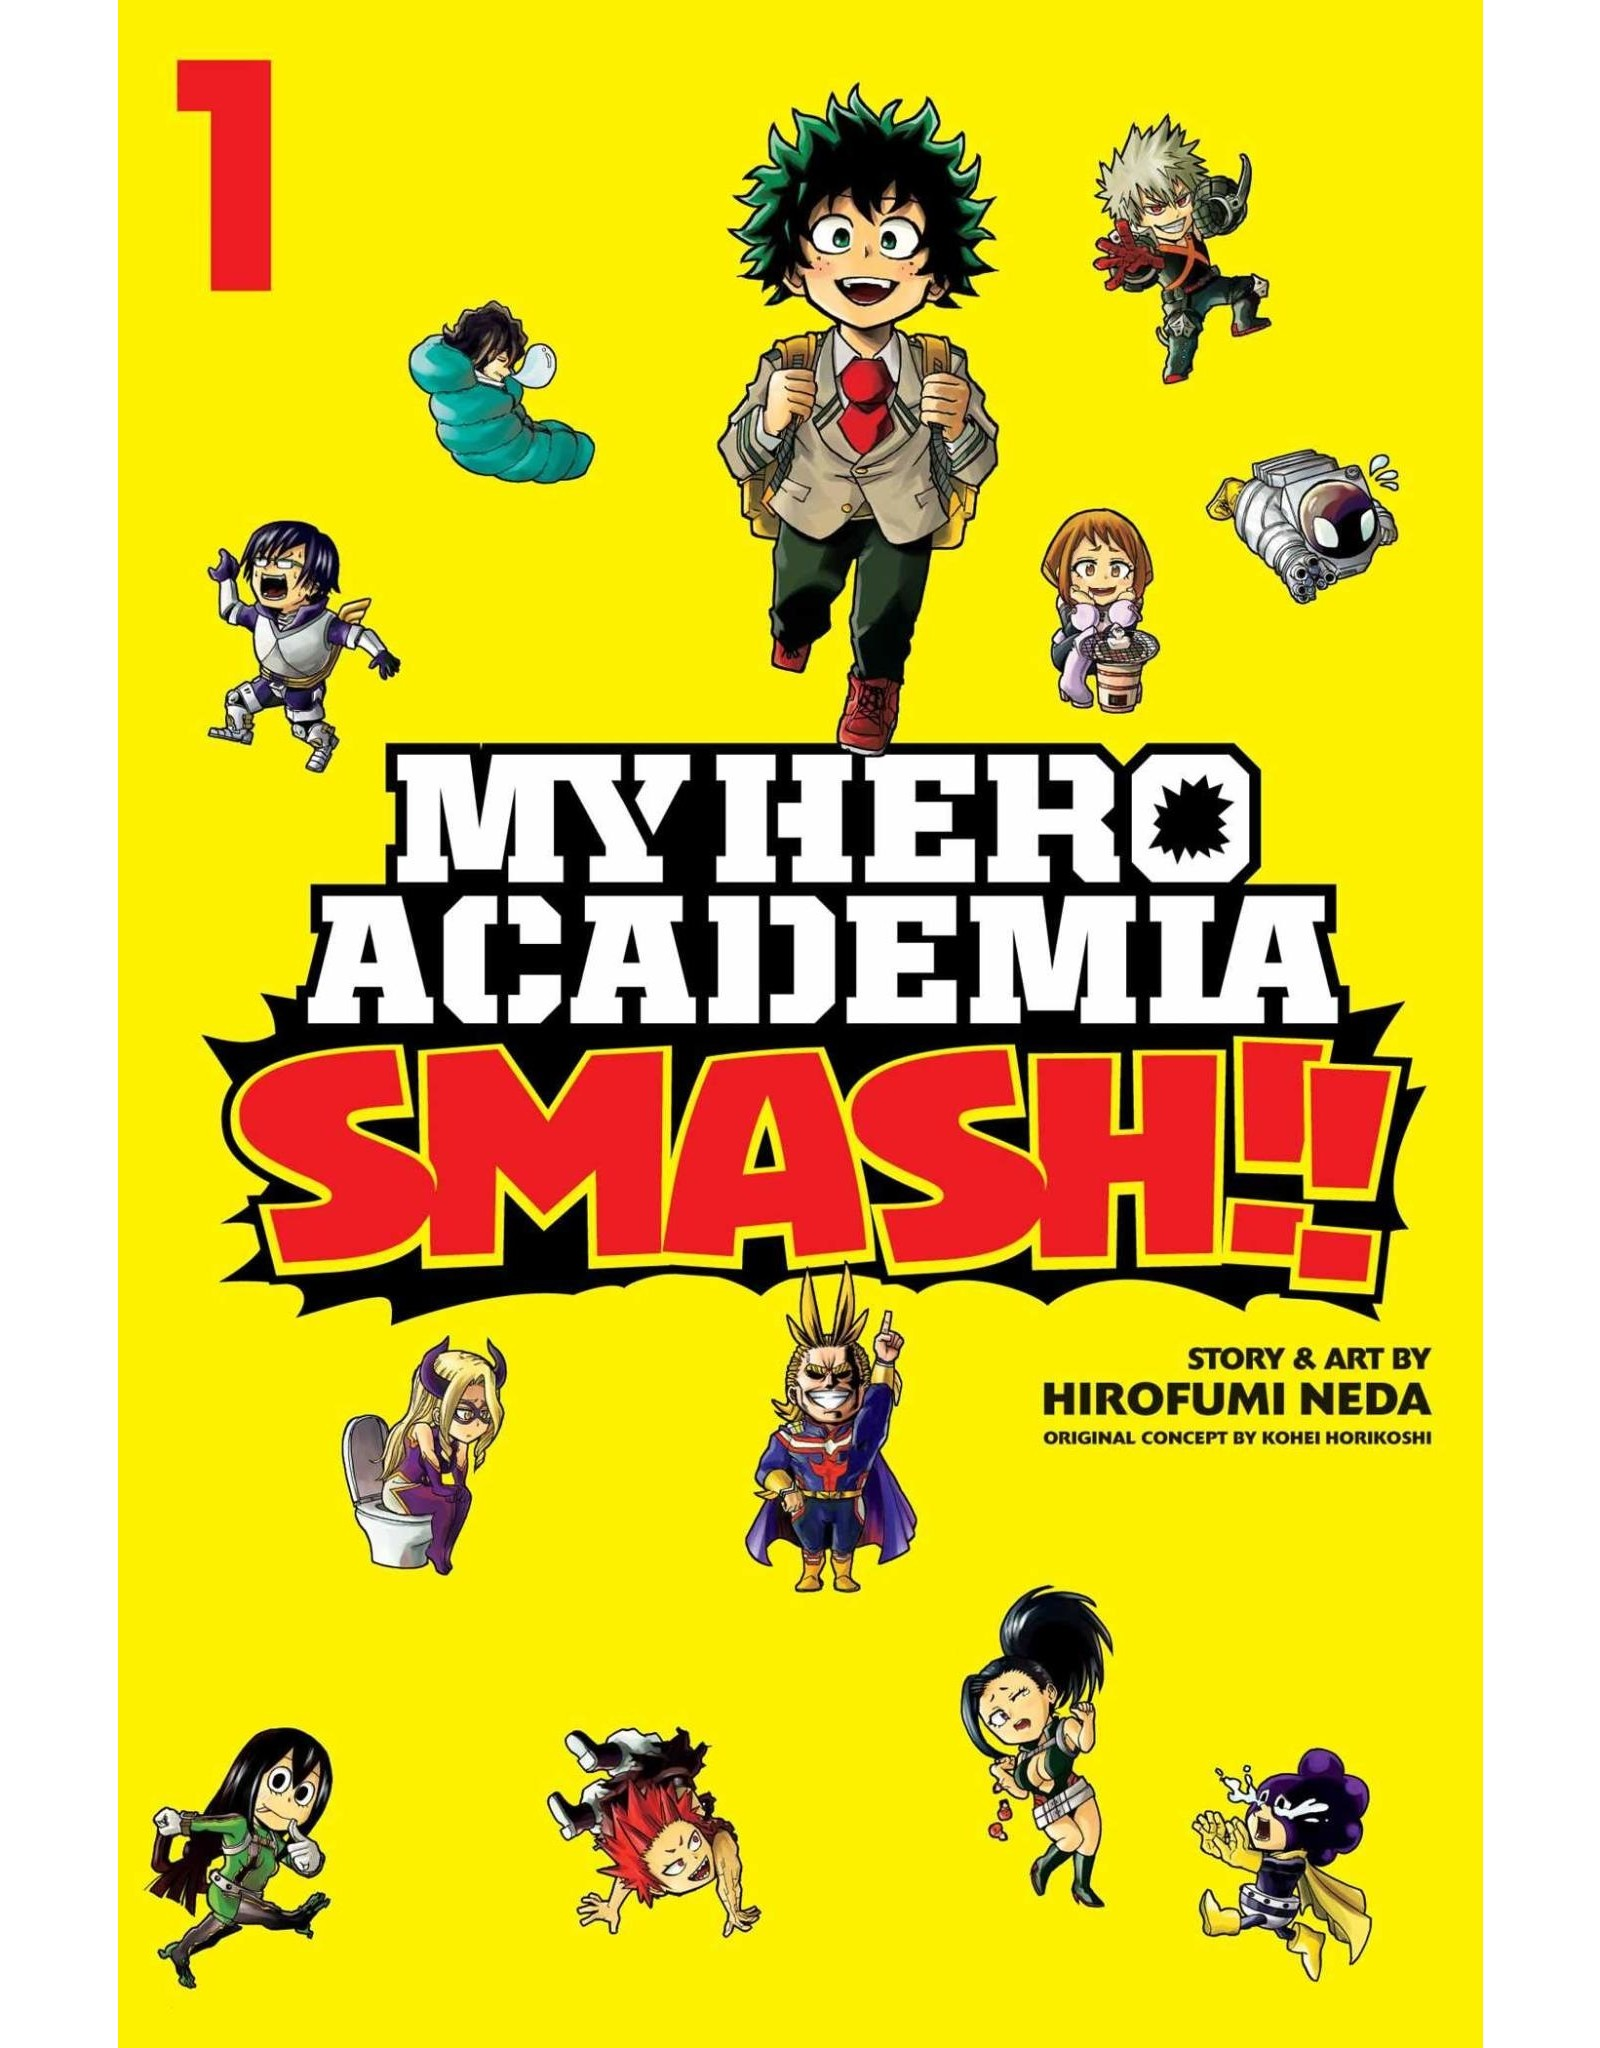 My Hero Academia Smash!! Volume 01 (English version)